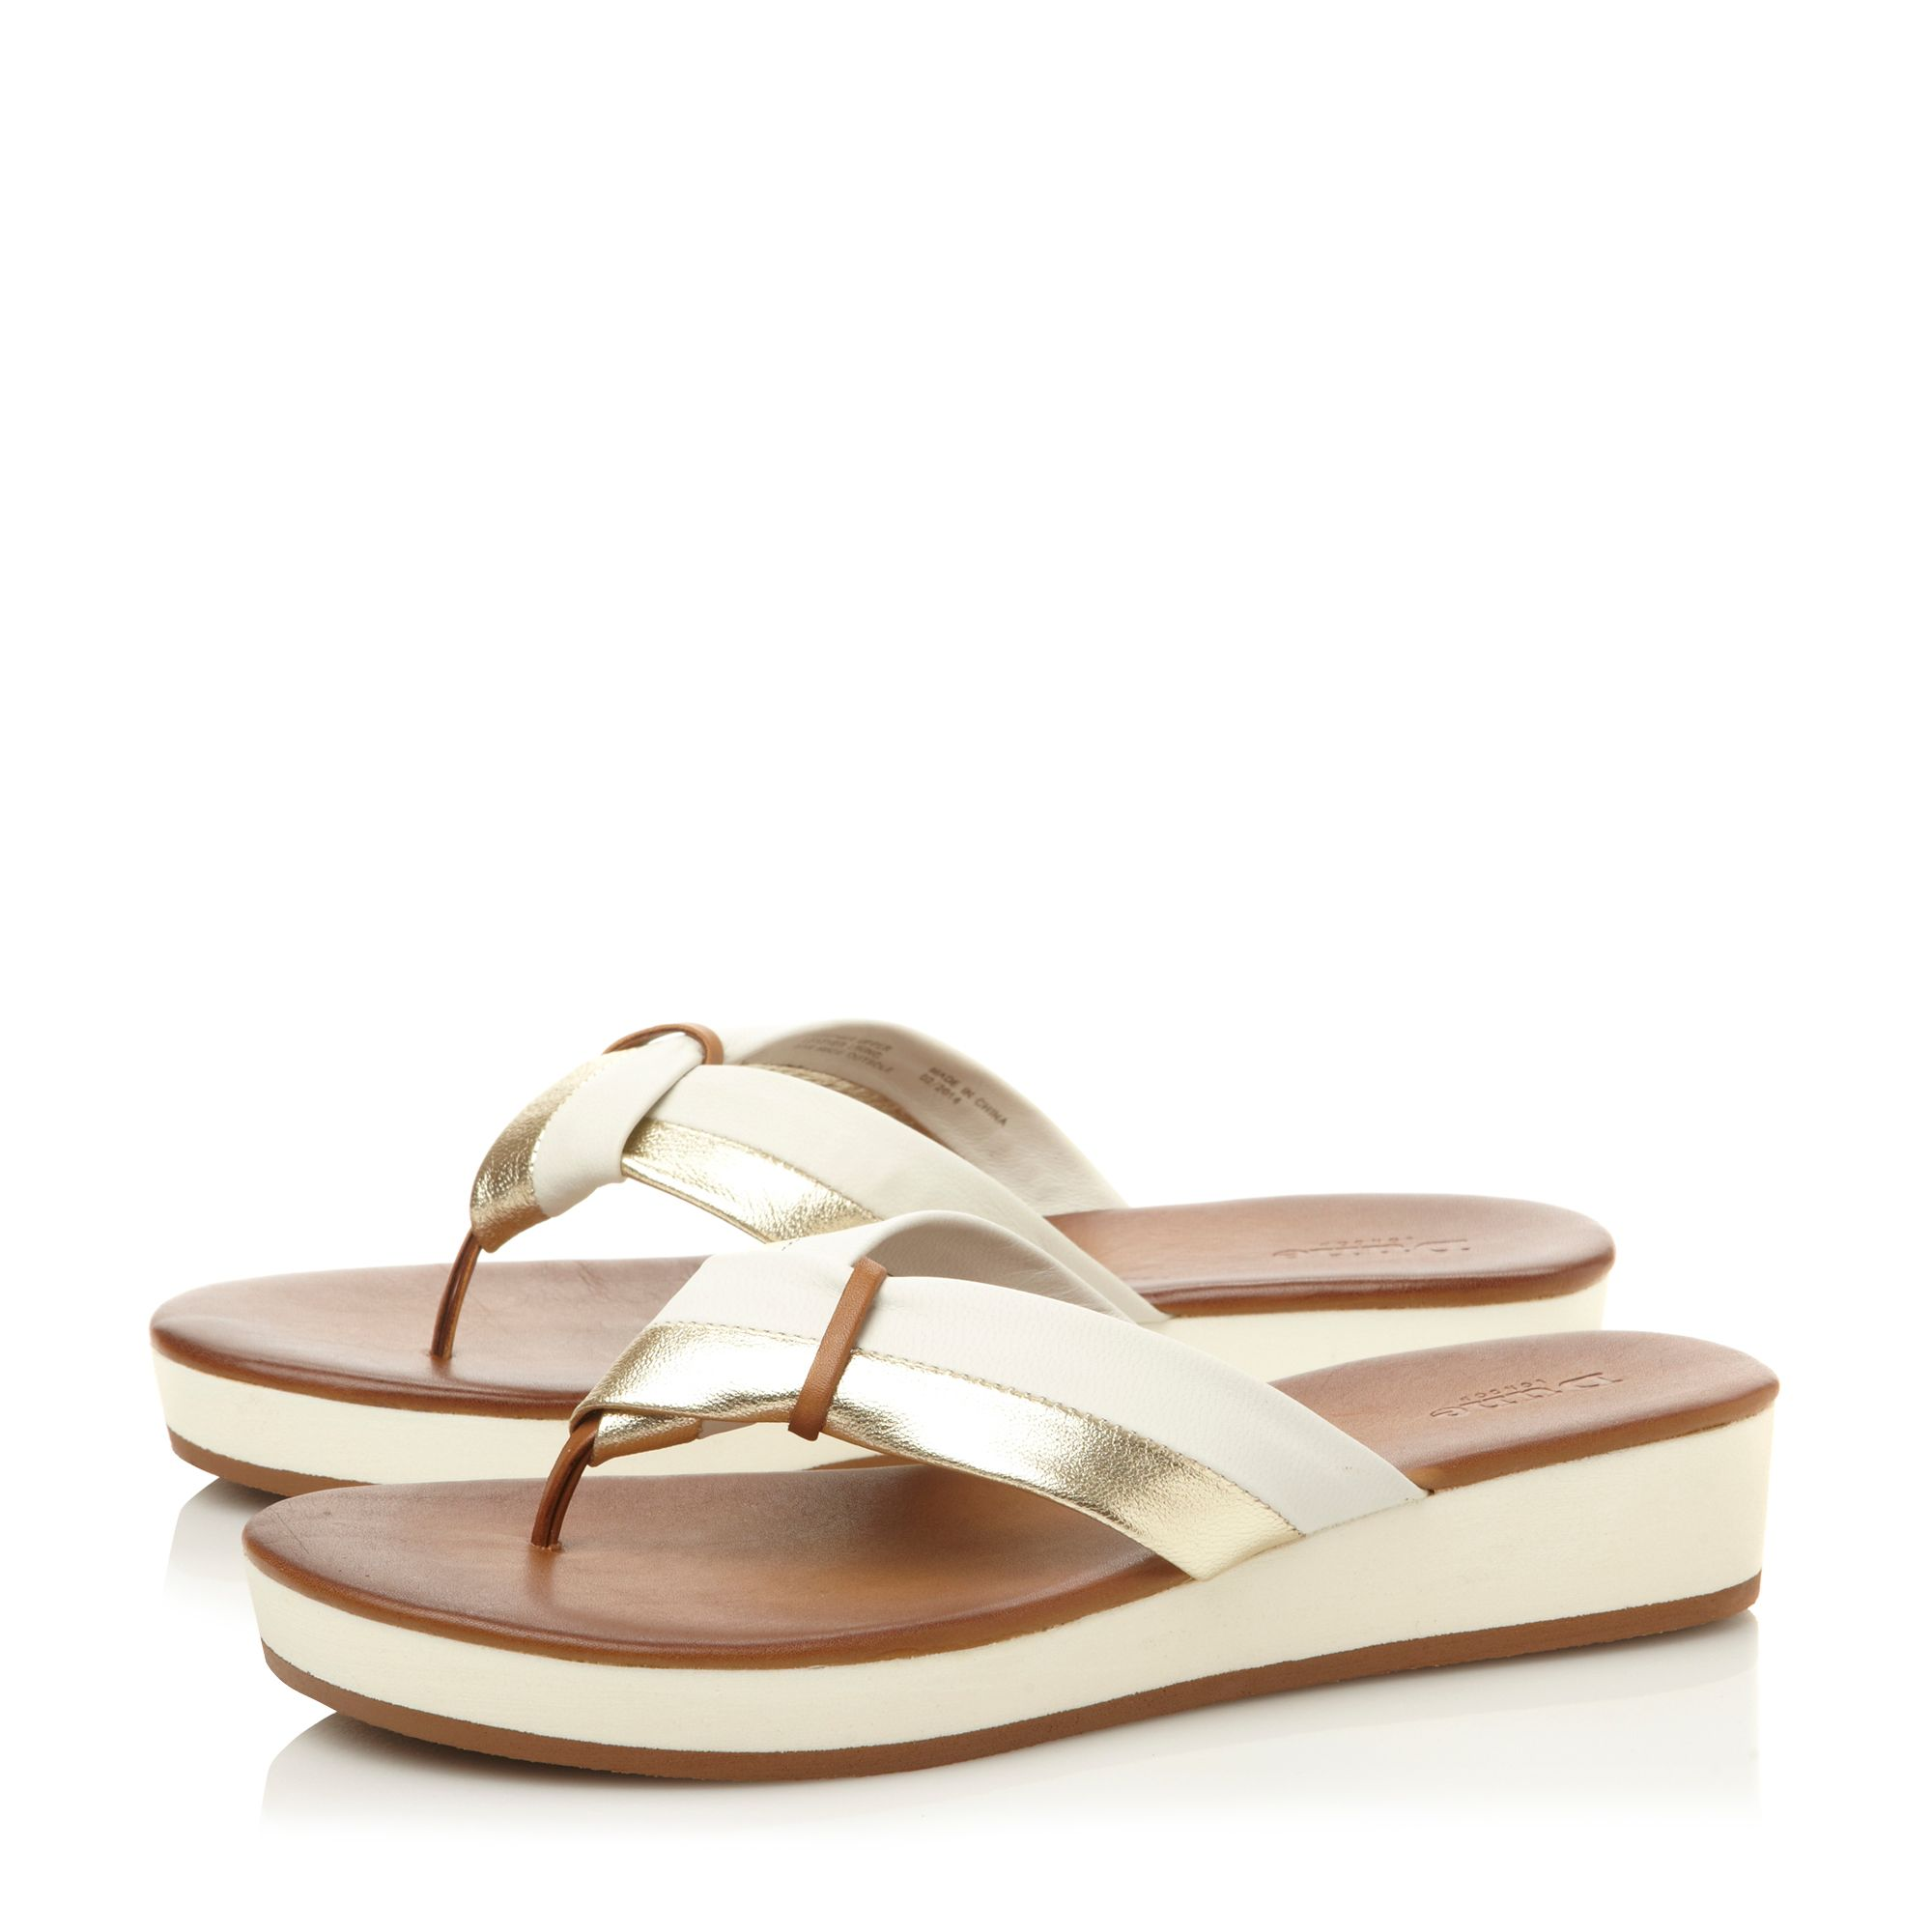 Jannys leather flat sandals